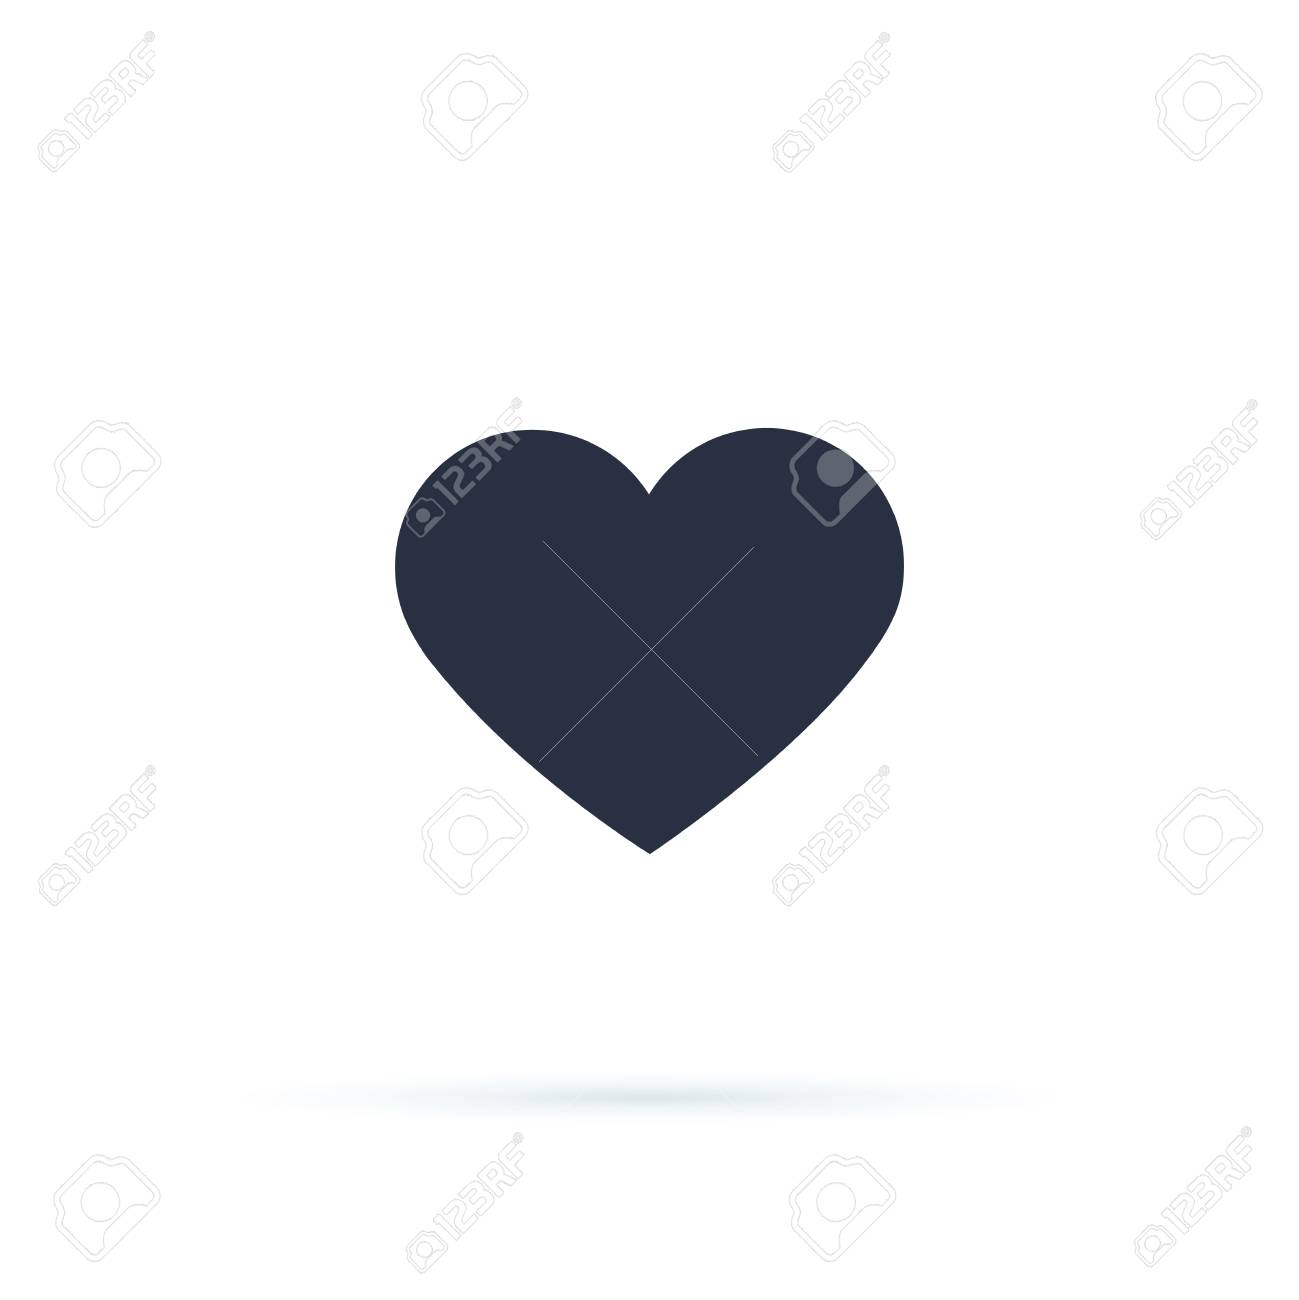 Heart icon vector 10 eps design. Like and Heart icon. Upvote likes buttons. Social nets red heart web buttons isolated on white background. Vector illustaration. Active and not button social network - 127716642